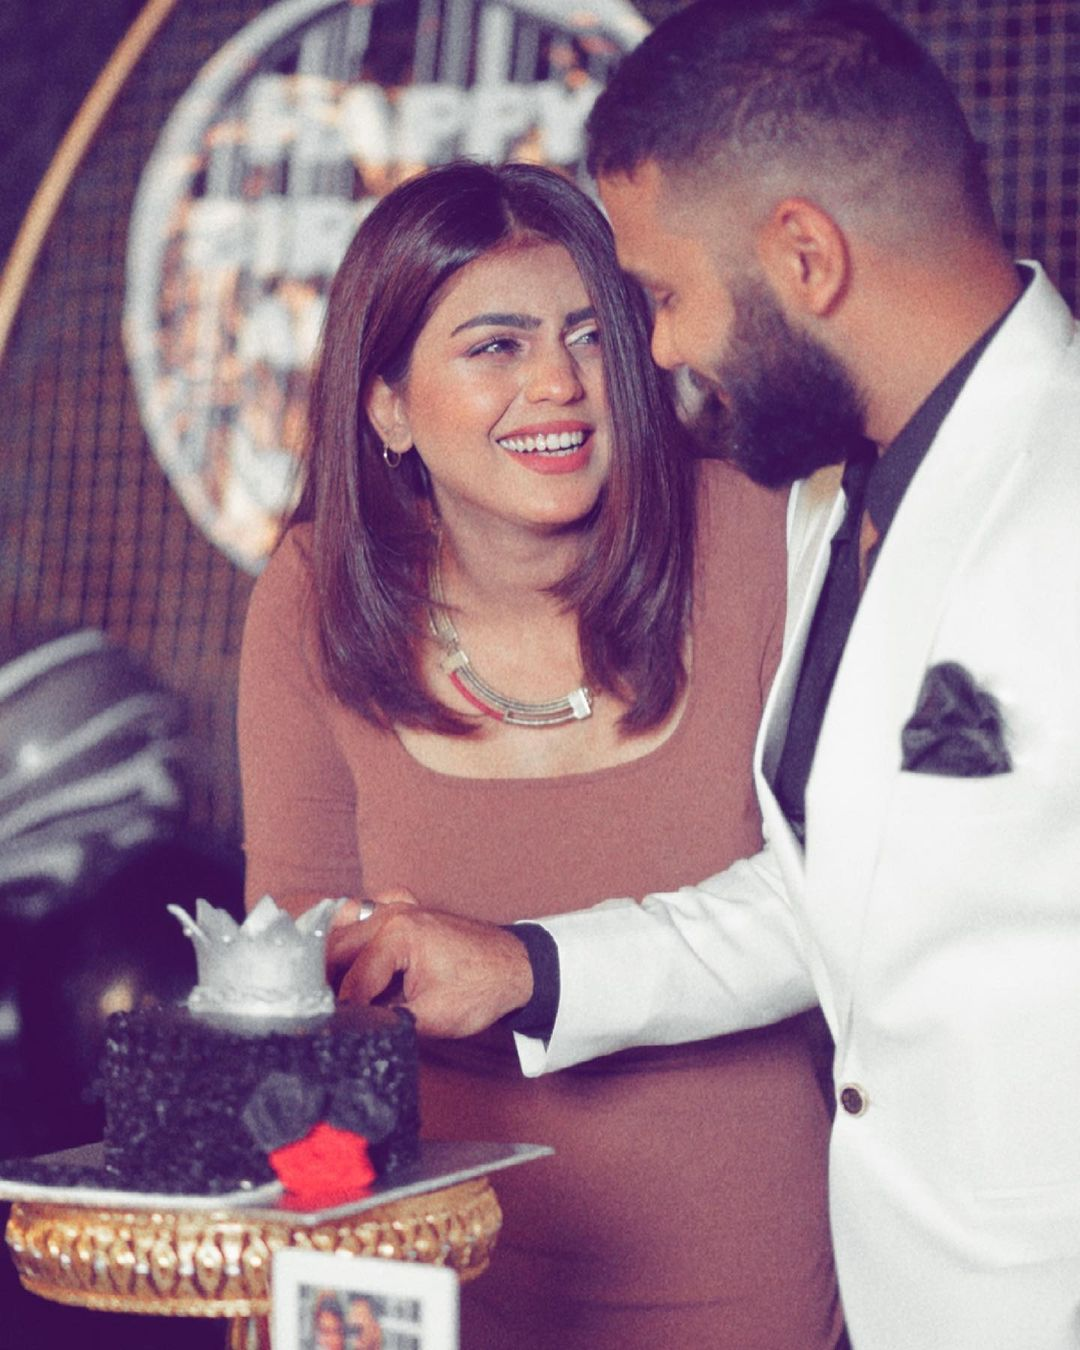 Anumta Qureshi with her Husband on Their Birthday Party